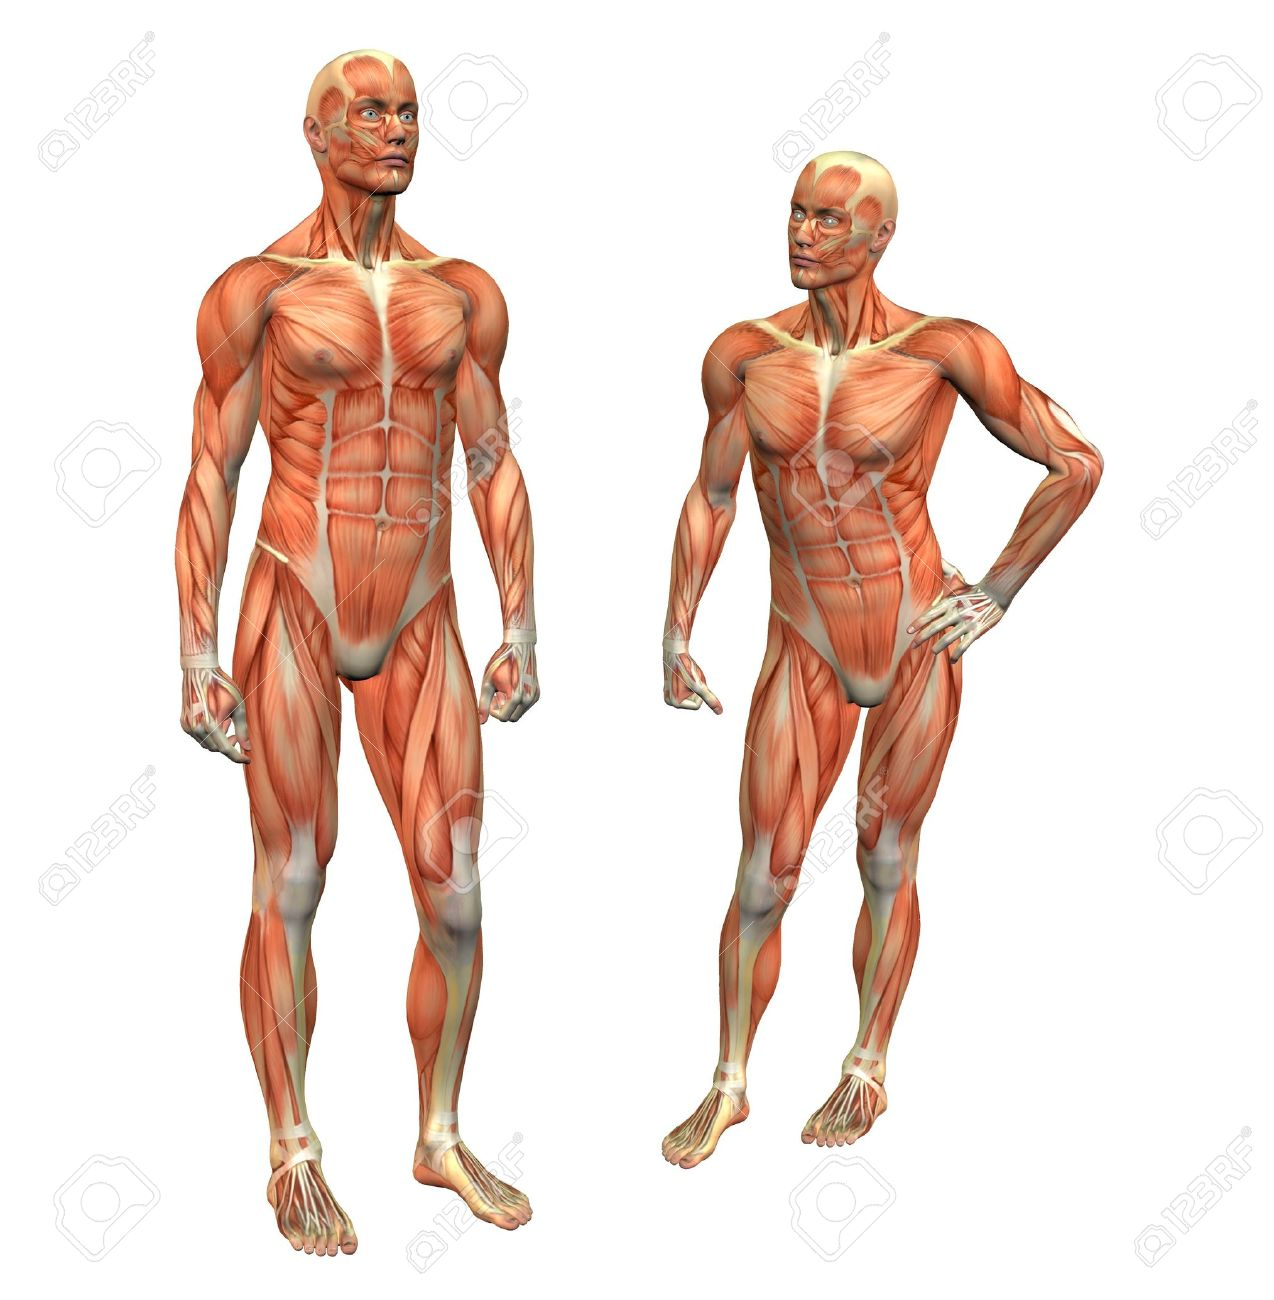 Anatomy Muscle Man Standing W/ Clipping Mask Stock Photo, Picture ...